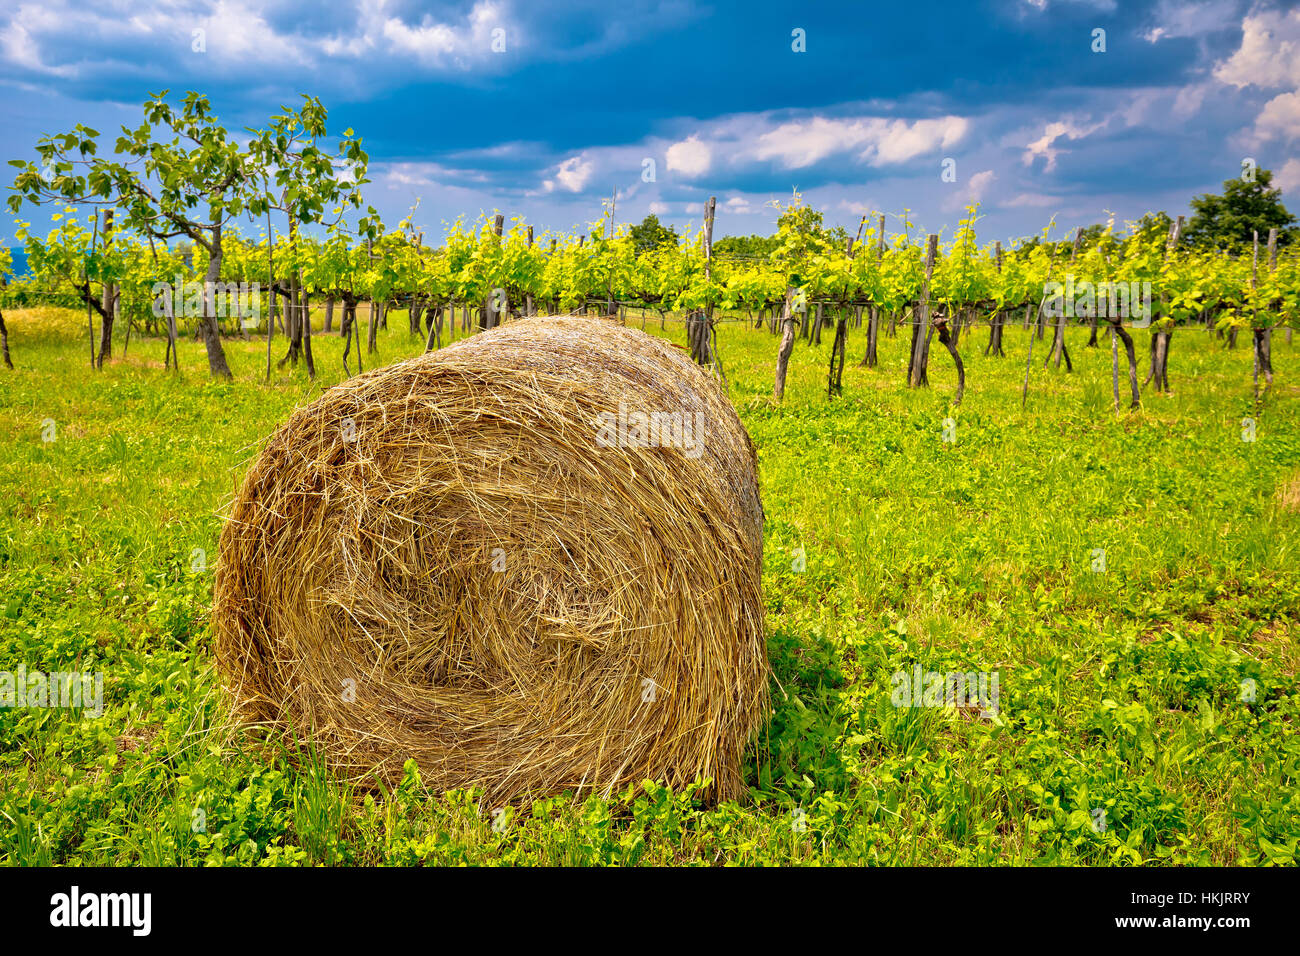 Vineyard and hay bale in inland Istria, green landscape of Croatia - Stock Image